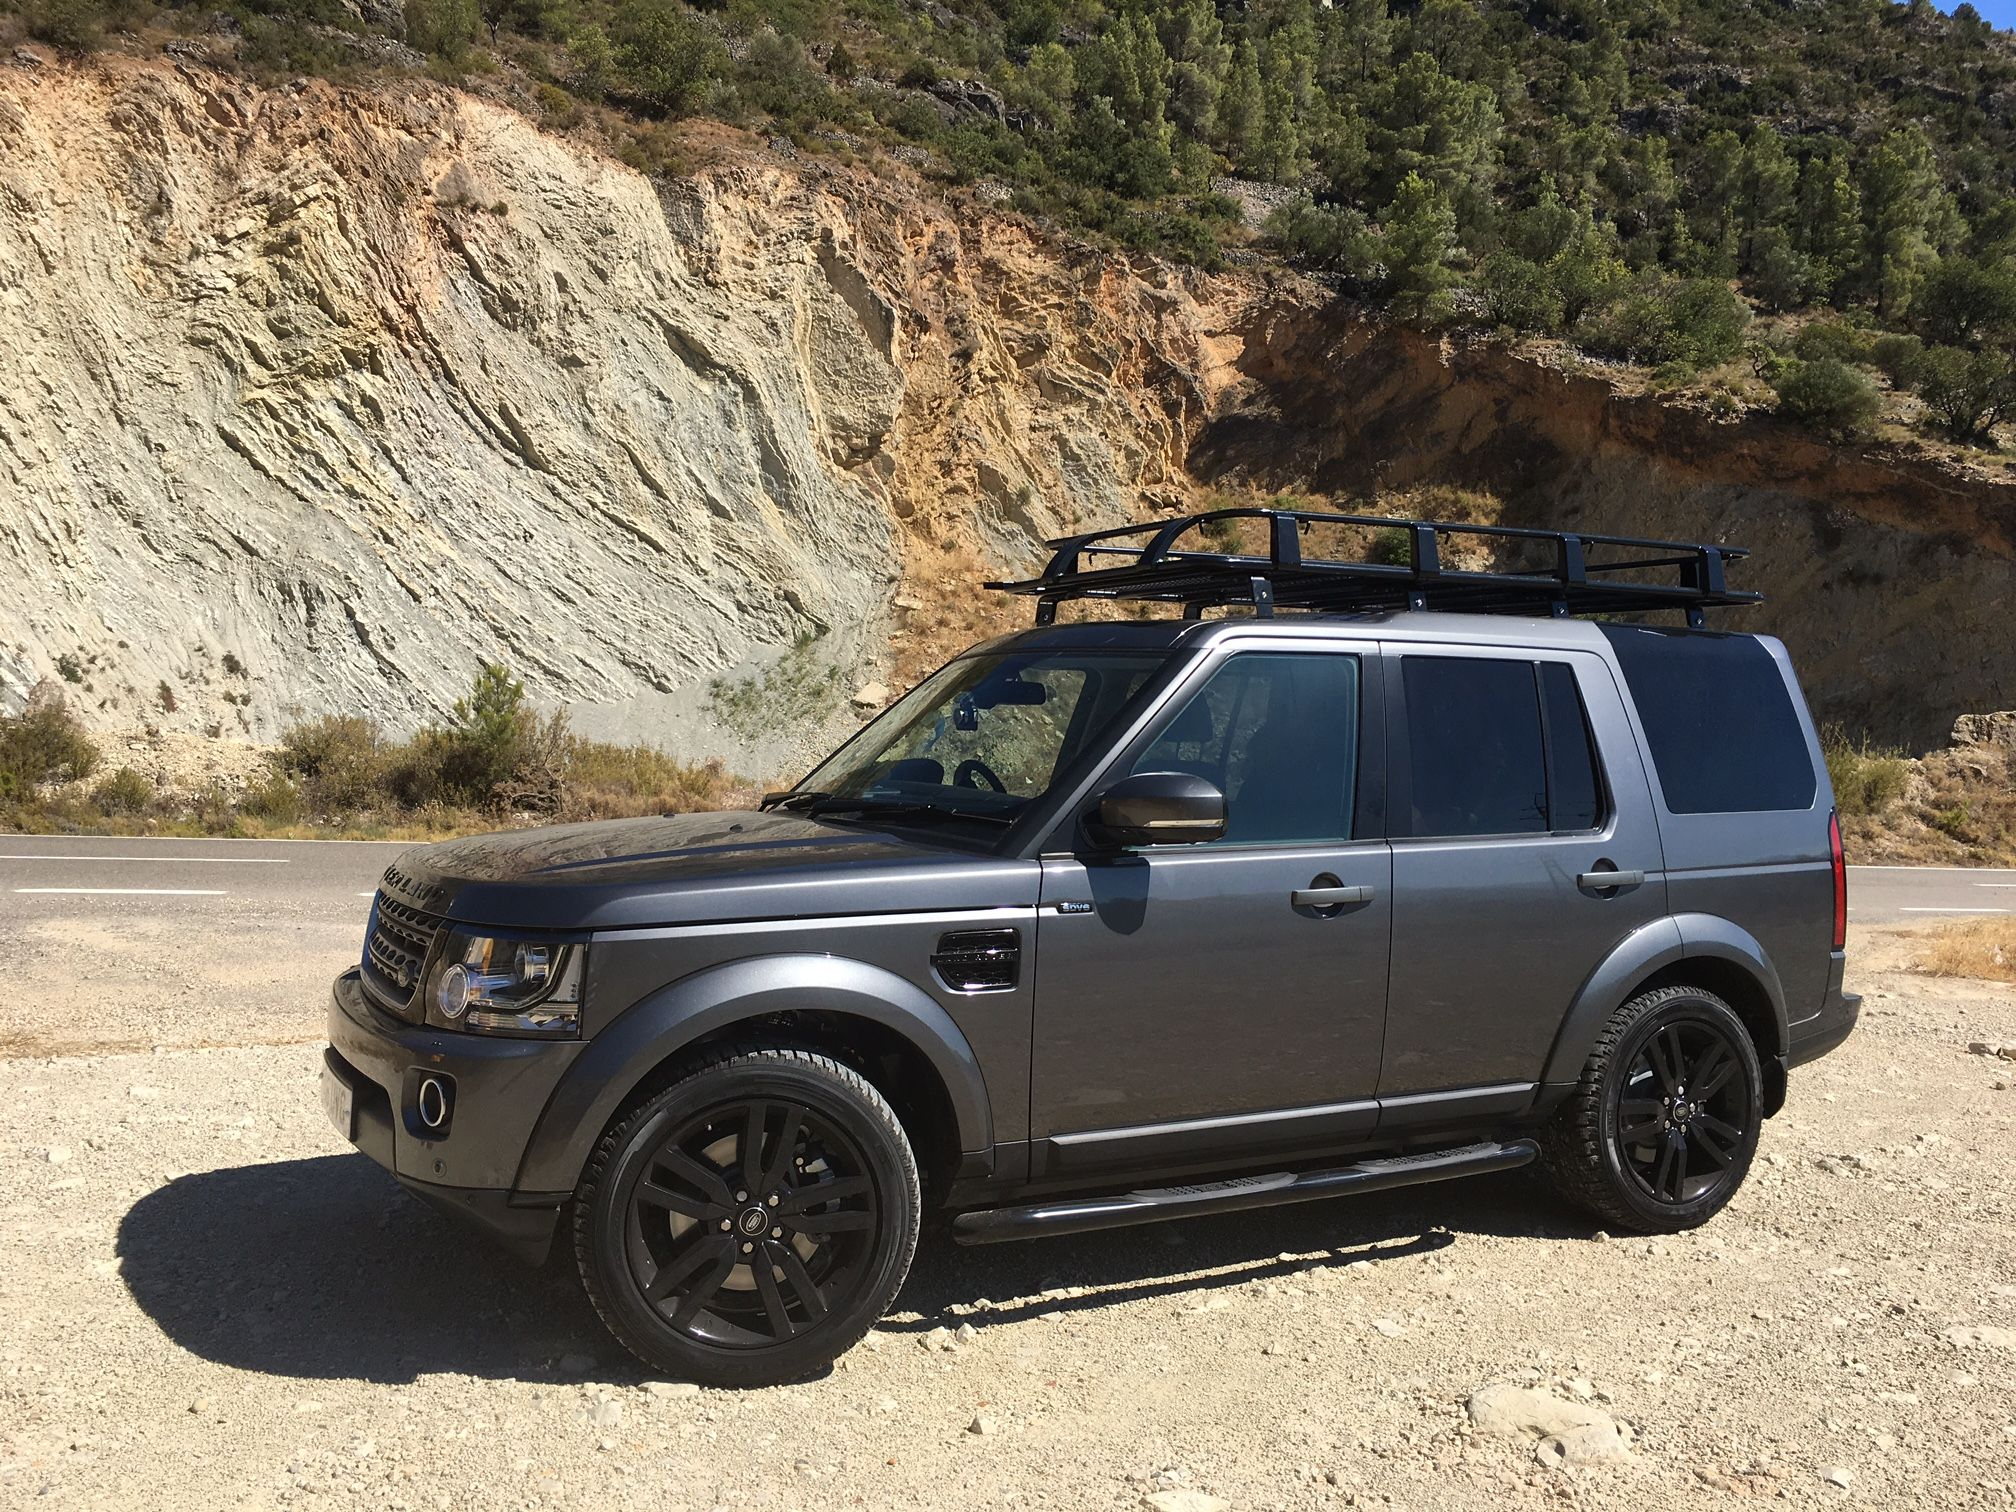 The Mighty Goliath Roof Rack Back In Stock For The Discovery 3 4 4x4 Direct4x4 Discovery Landrover Discovery3 Discovery4 Roofrack Goliath R Auto